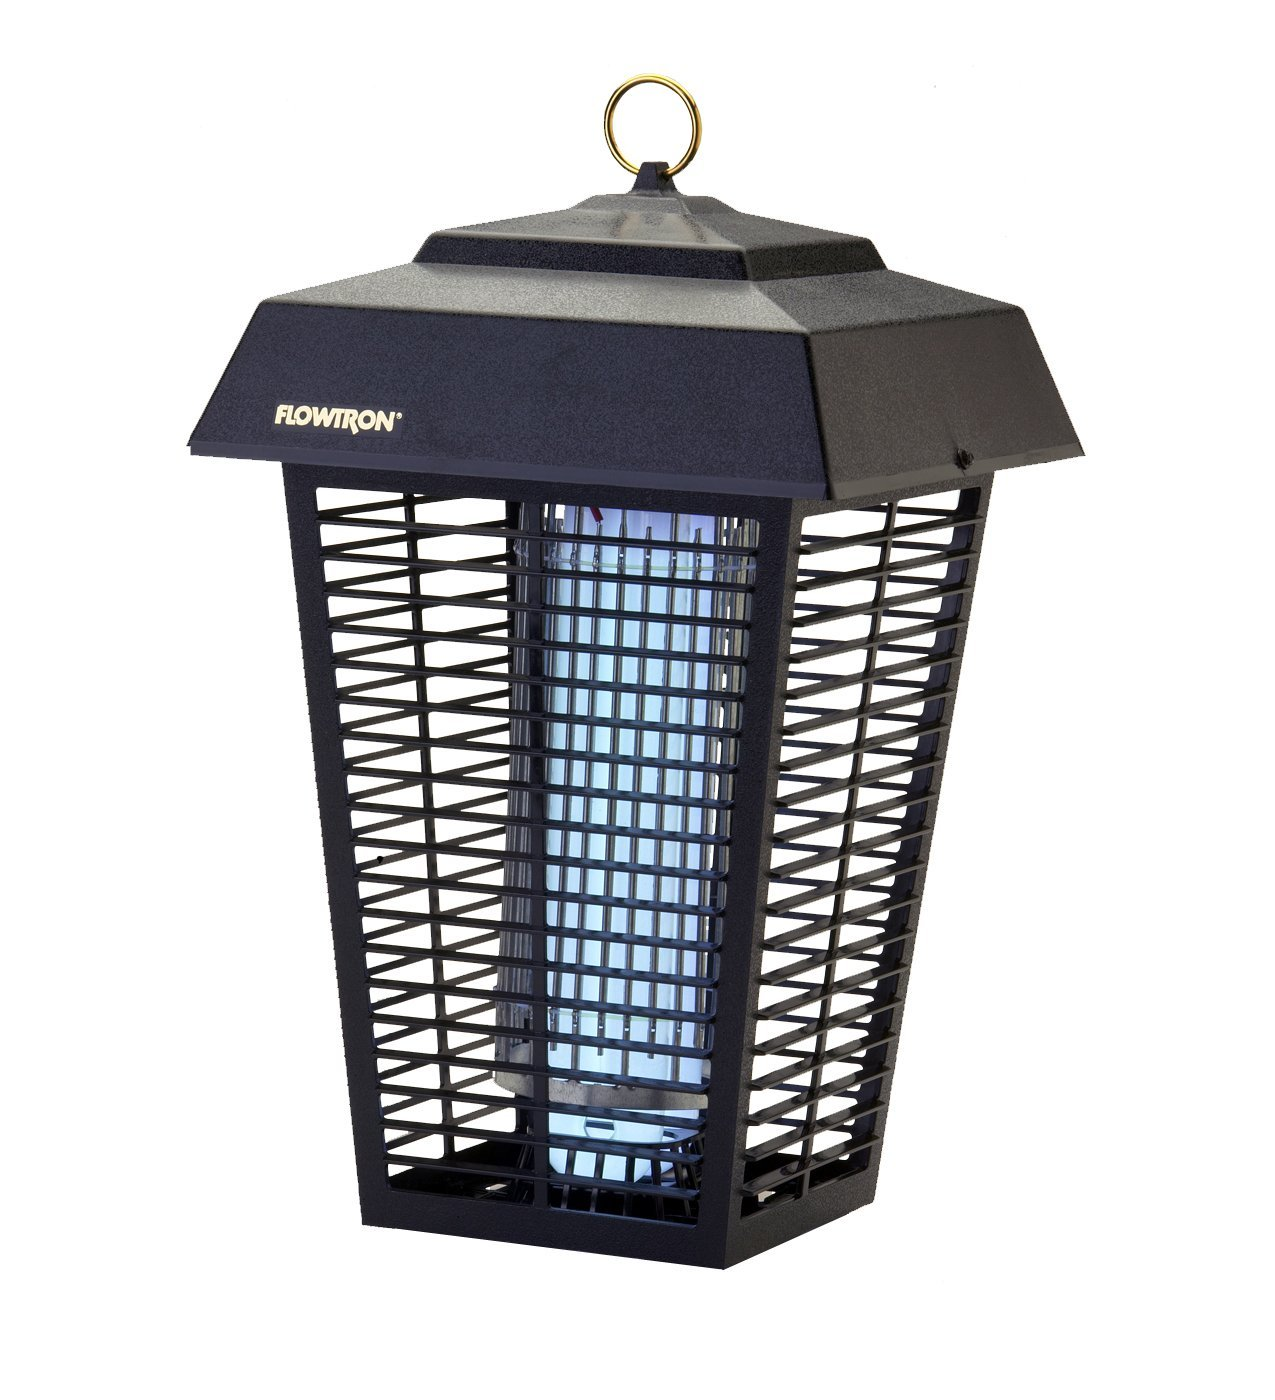 Flowtron Model BK-80D Electronic Insect Killer - 1-1/2 Acres